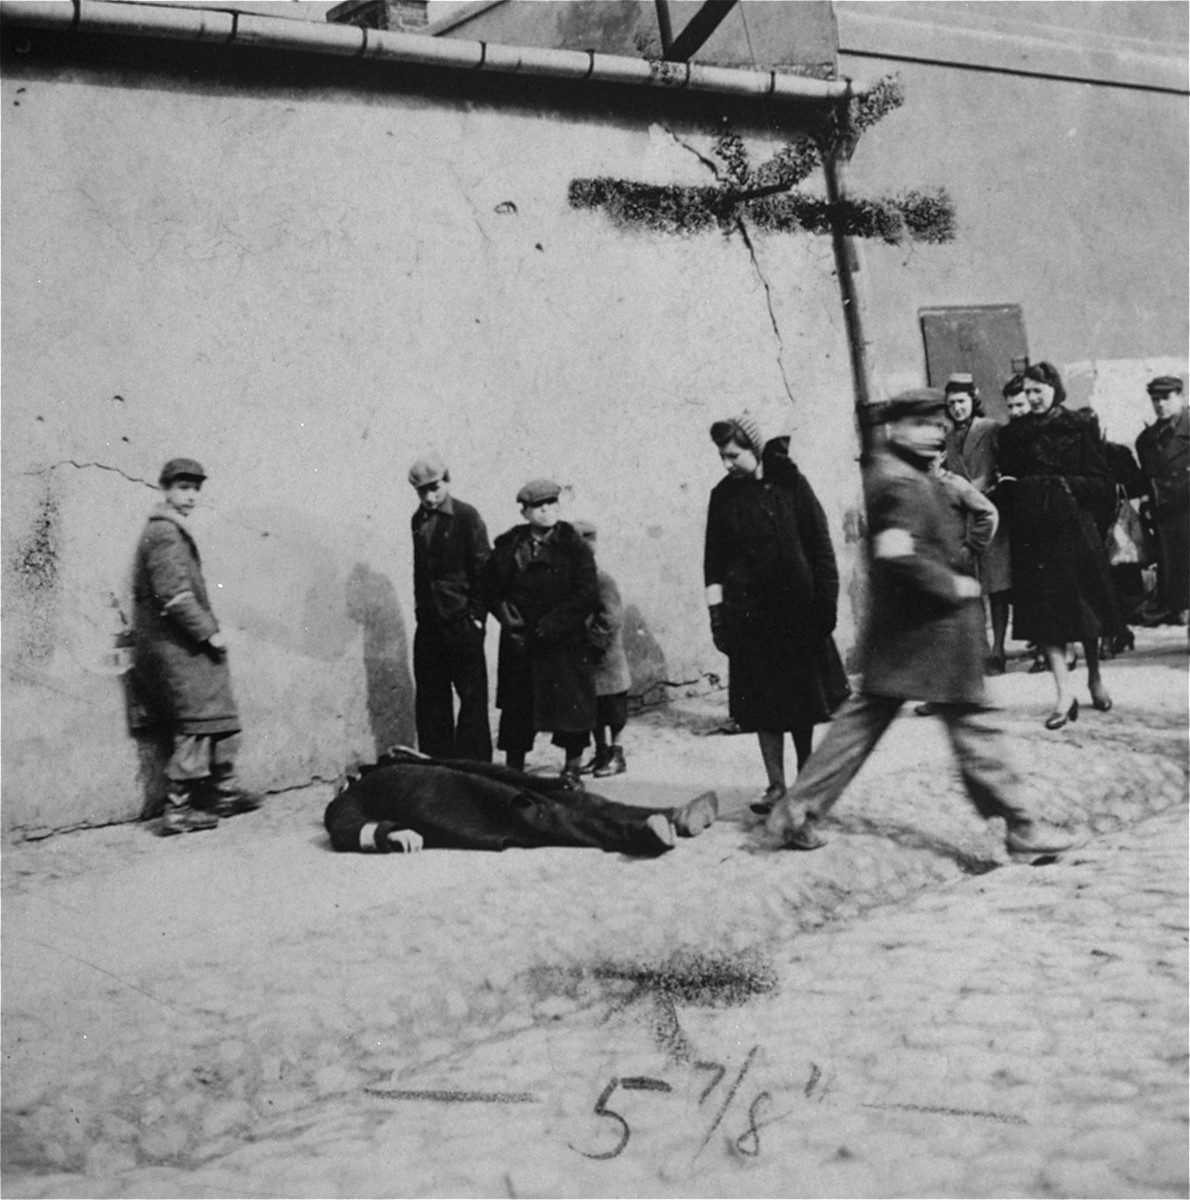 Warsaw ghetto residents stare at a man who has collapsed in the street.